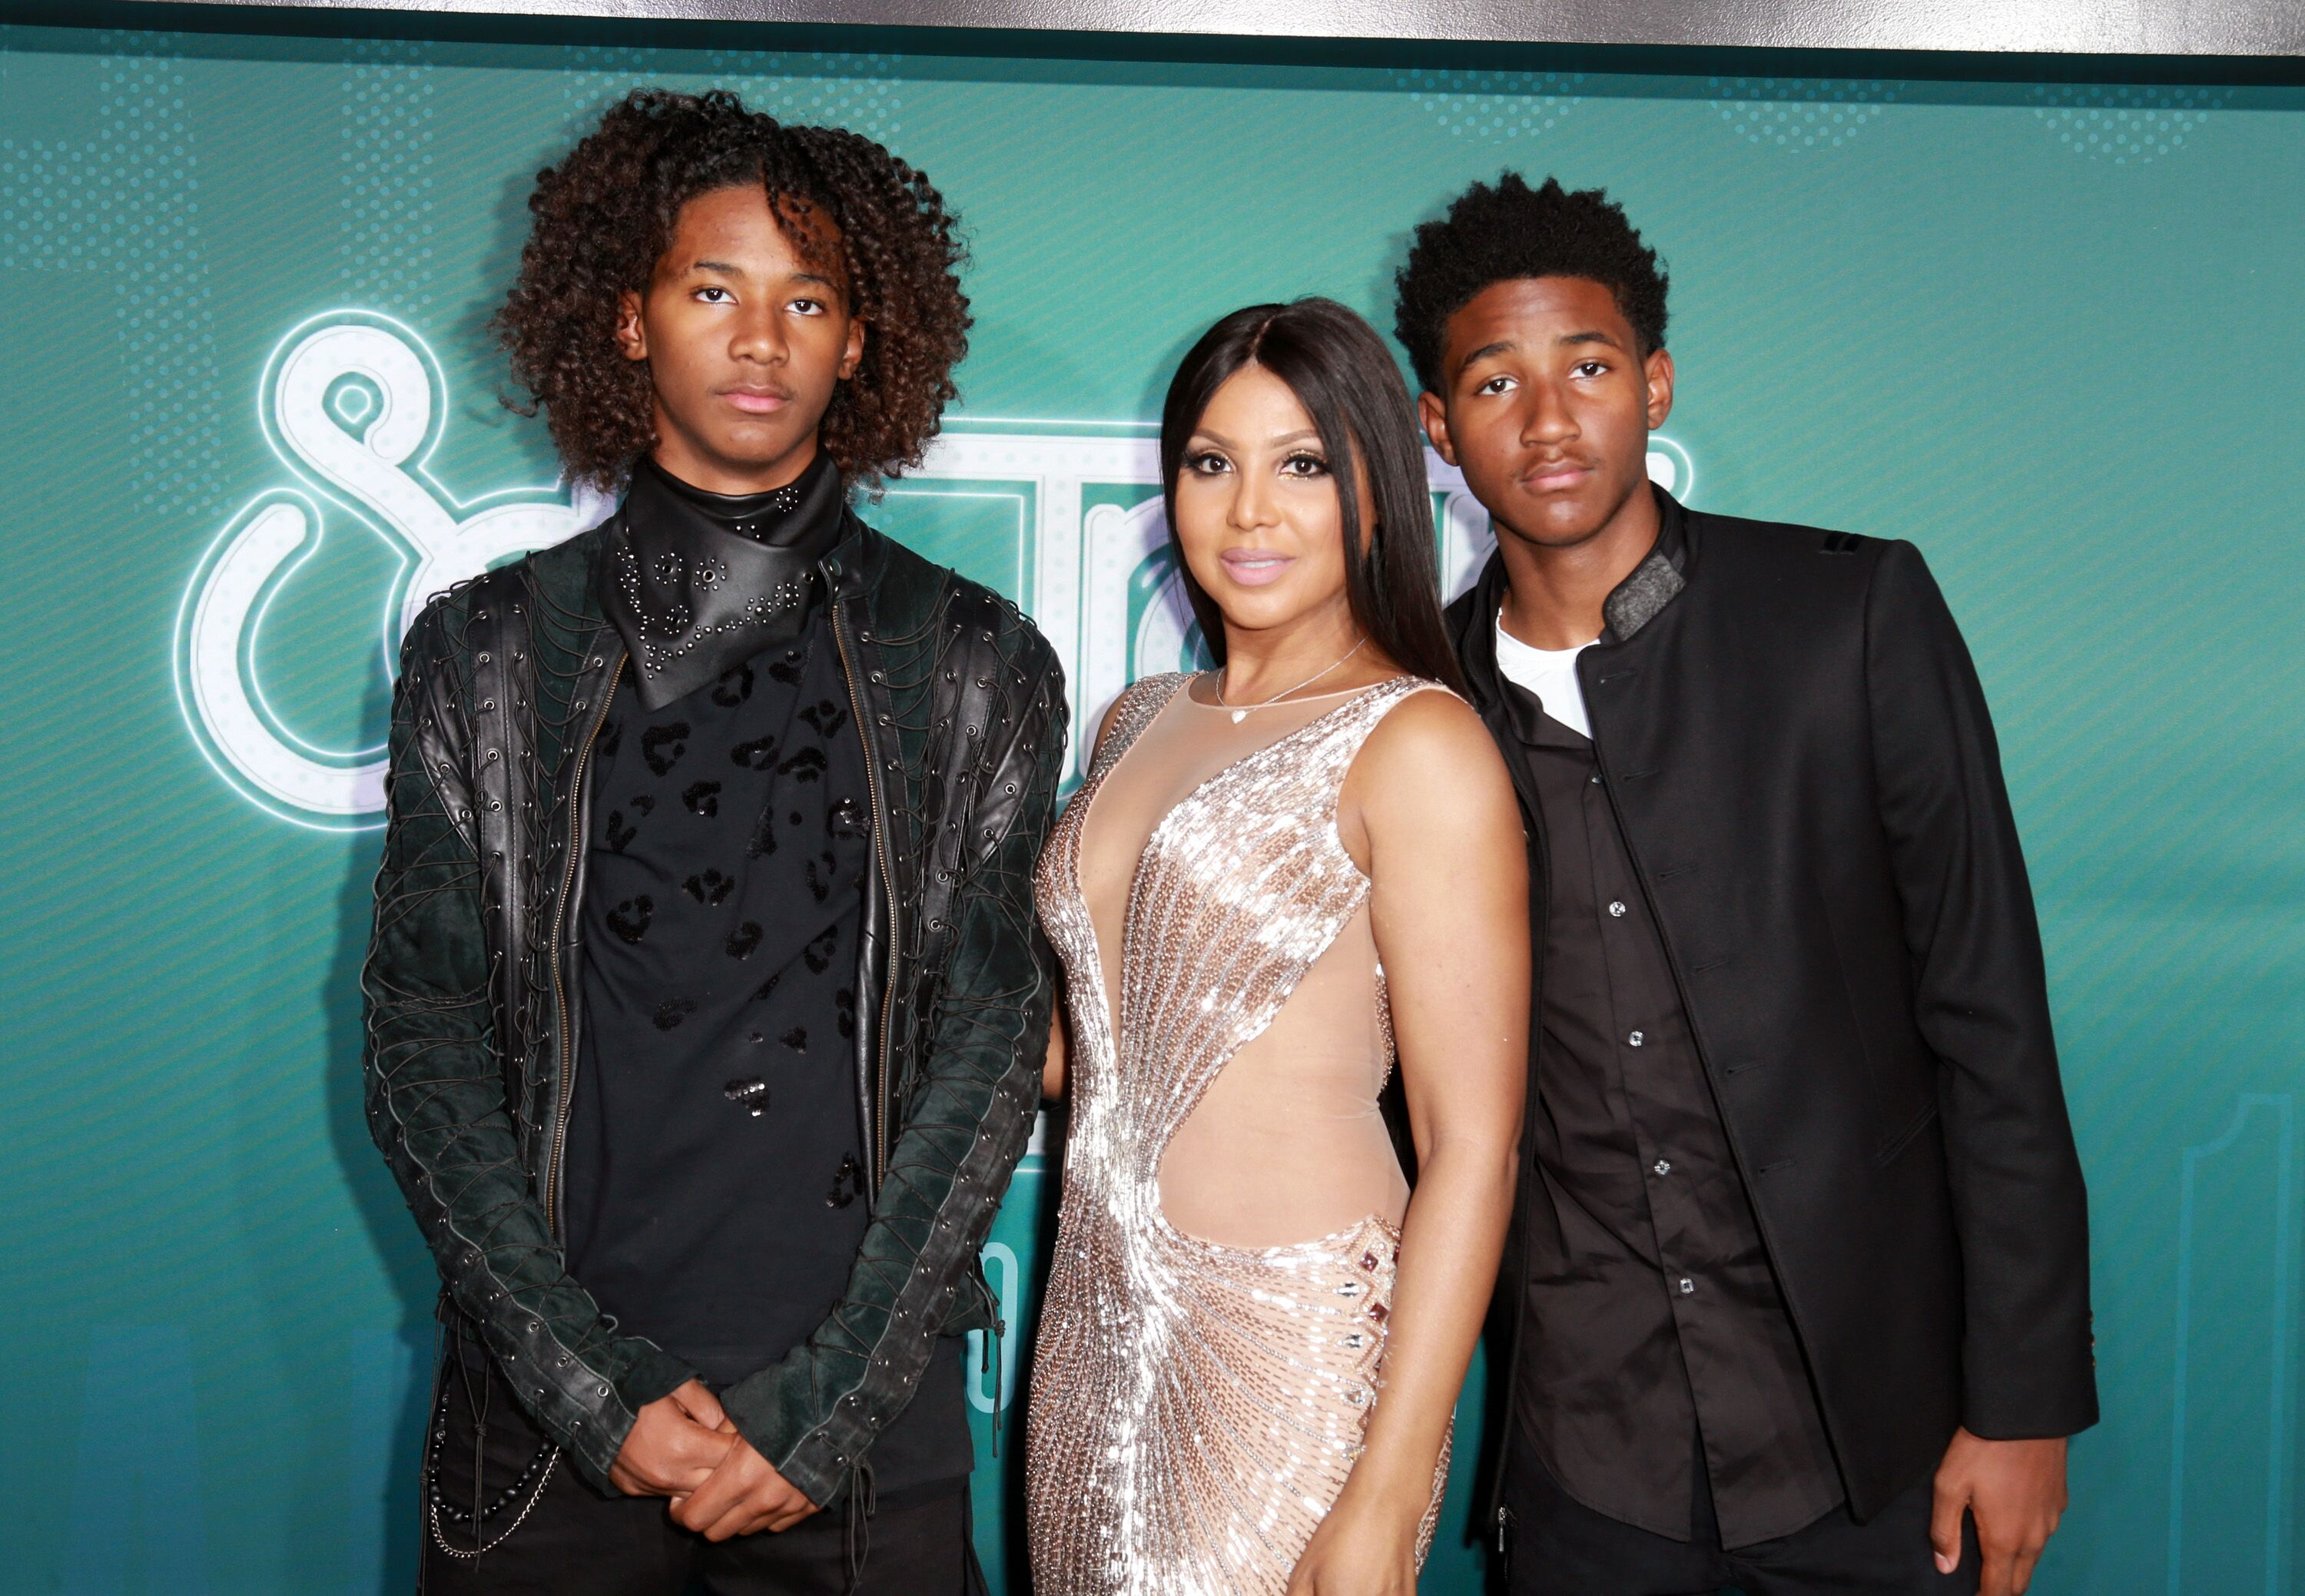 Toni Braxton and her sons Diezel and Denim attend the 2017 Soul Train Awards. | Photo: Getty Images